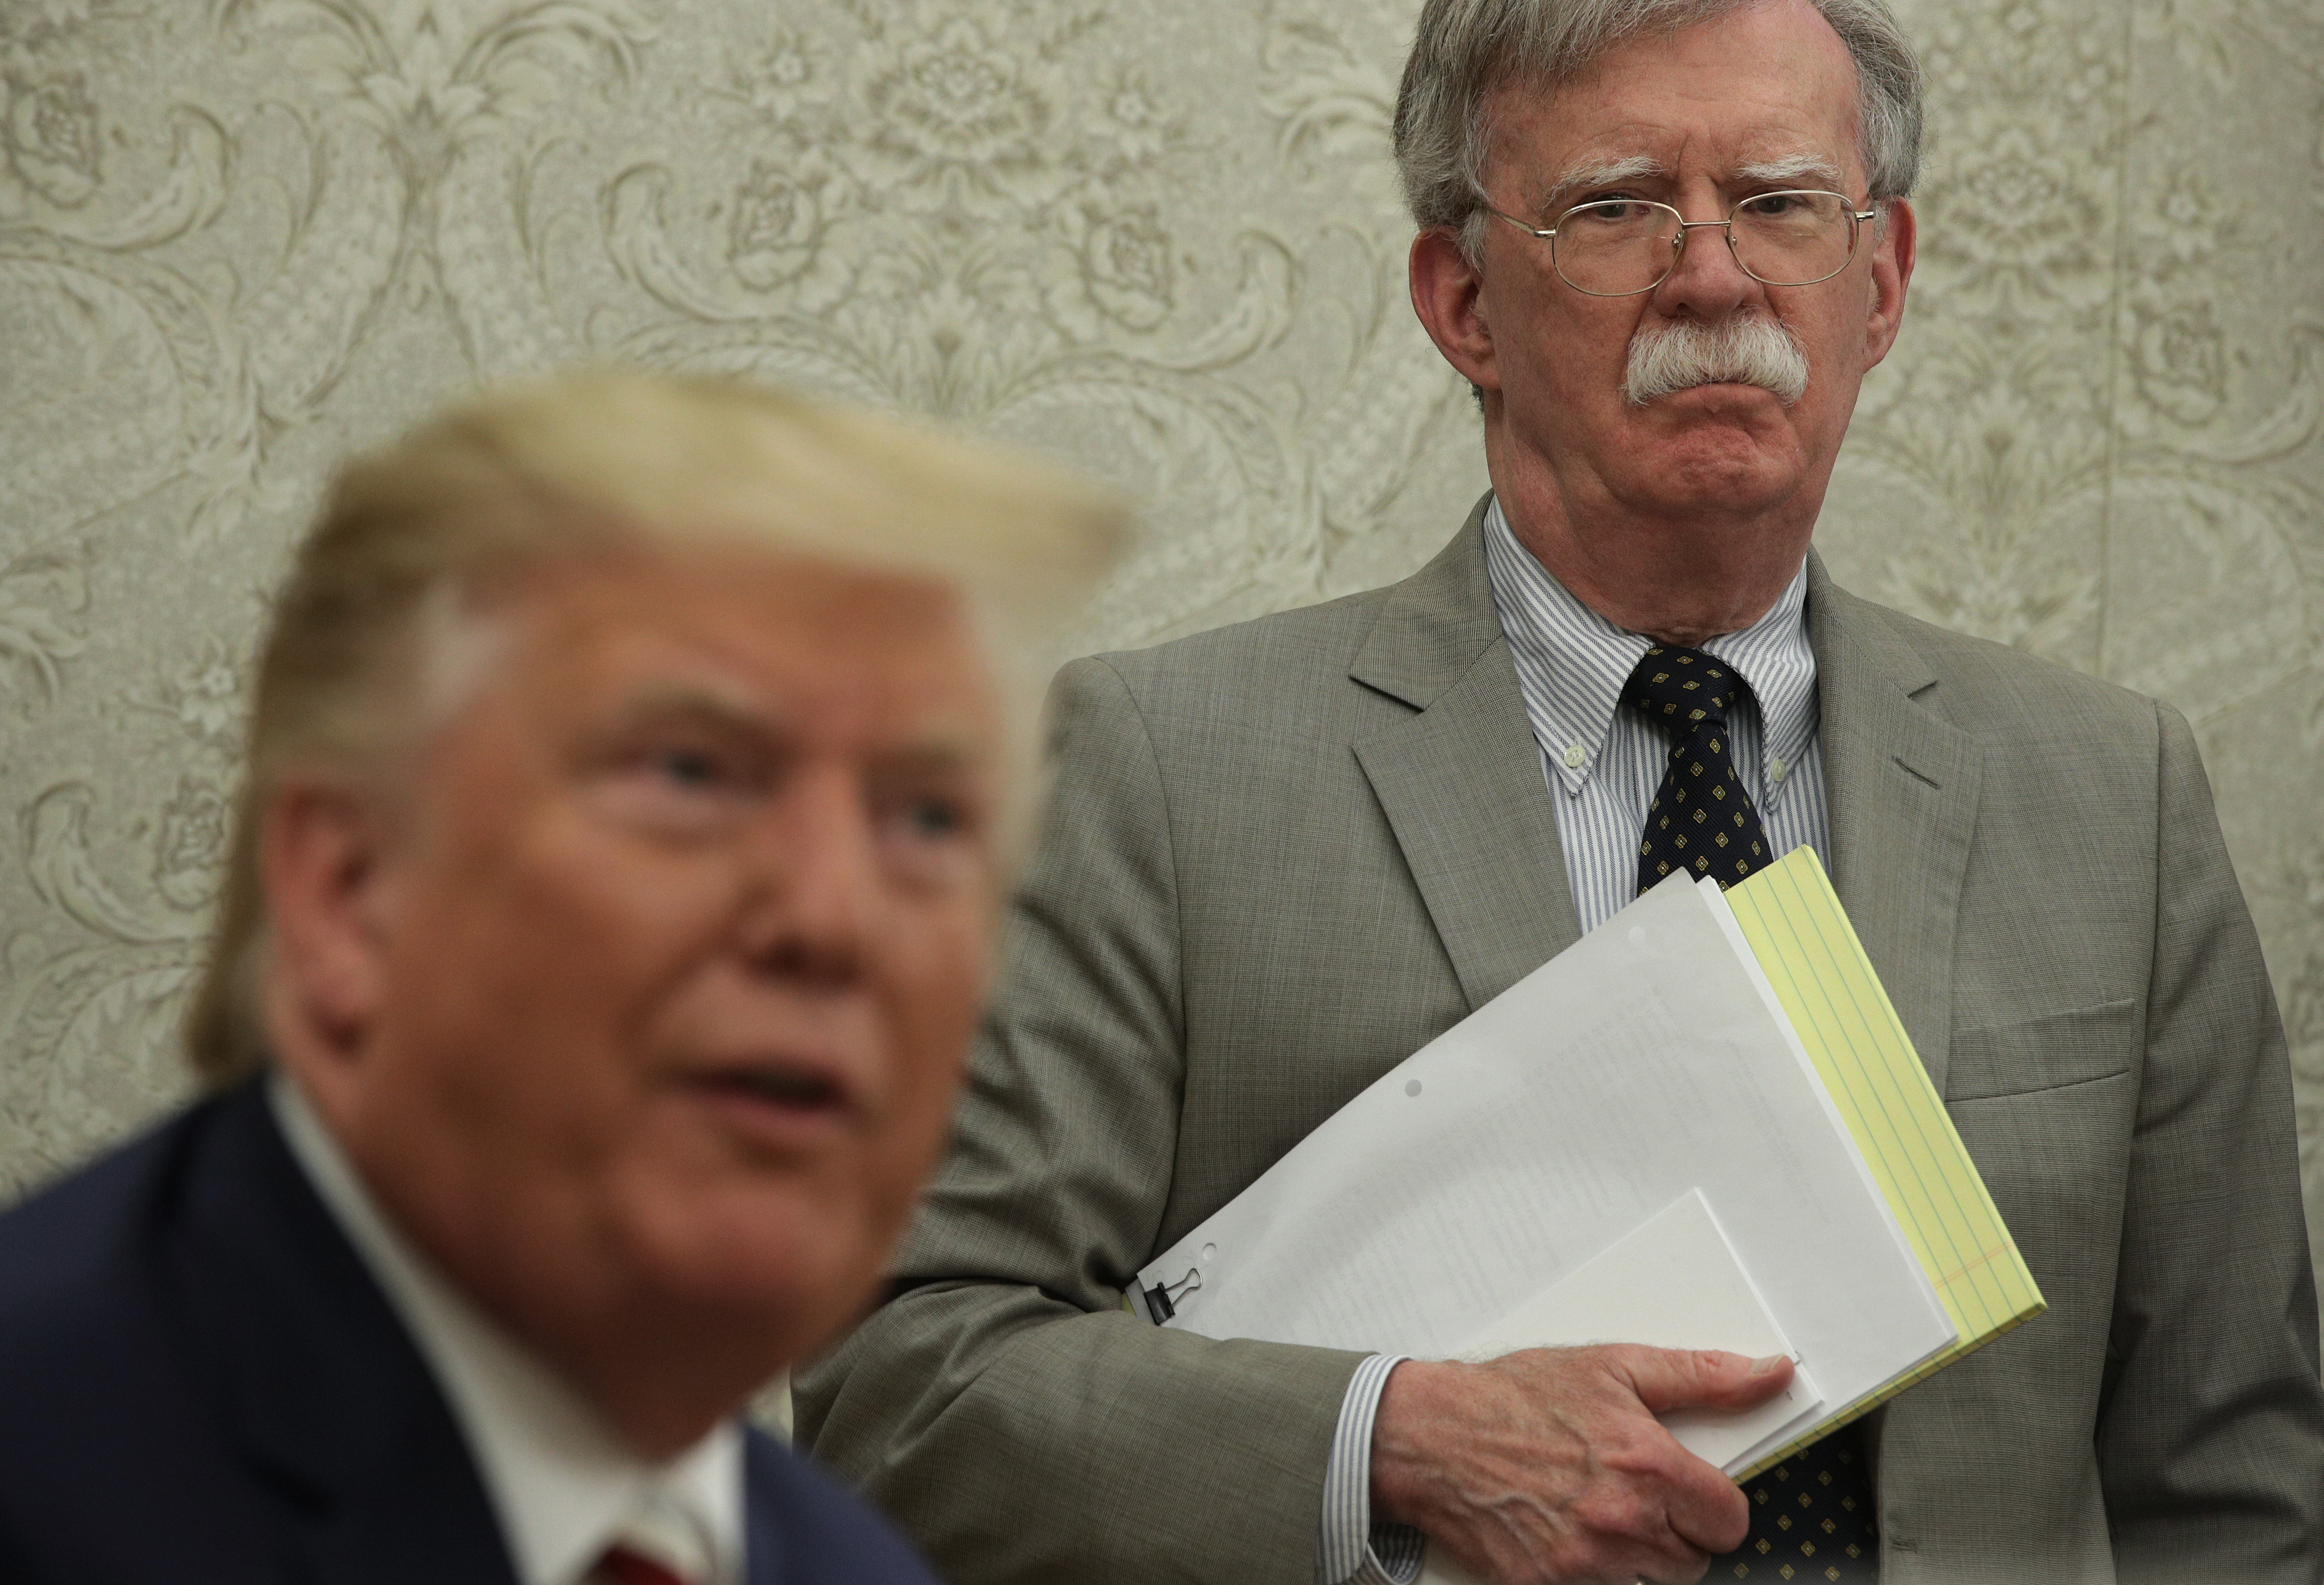 President Donald Trump speaks to members of the media as National Security Adviser John Bolton listens during a meeting with President of Romania Klaus Iohannis in the Oval Office of the White House on Aug. 20, 2019 in Washington, D.C.